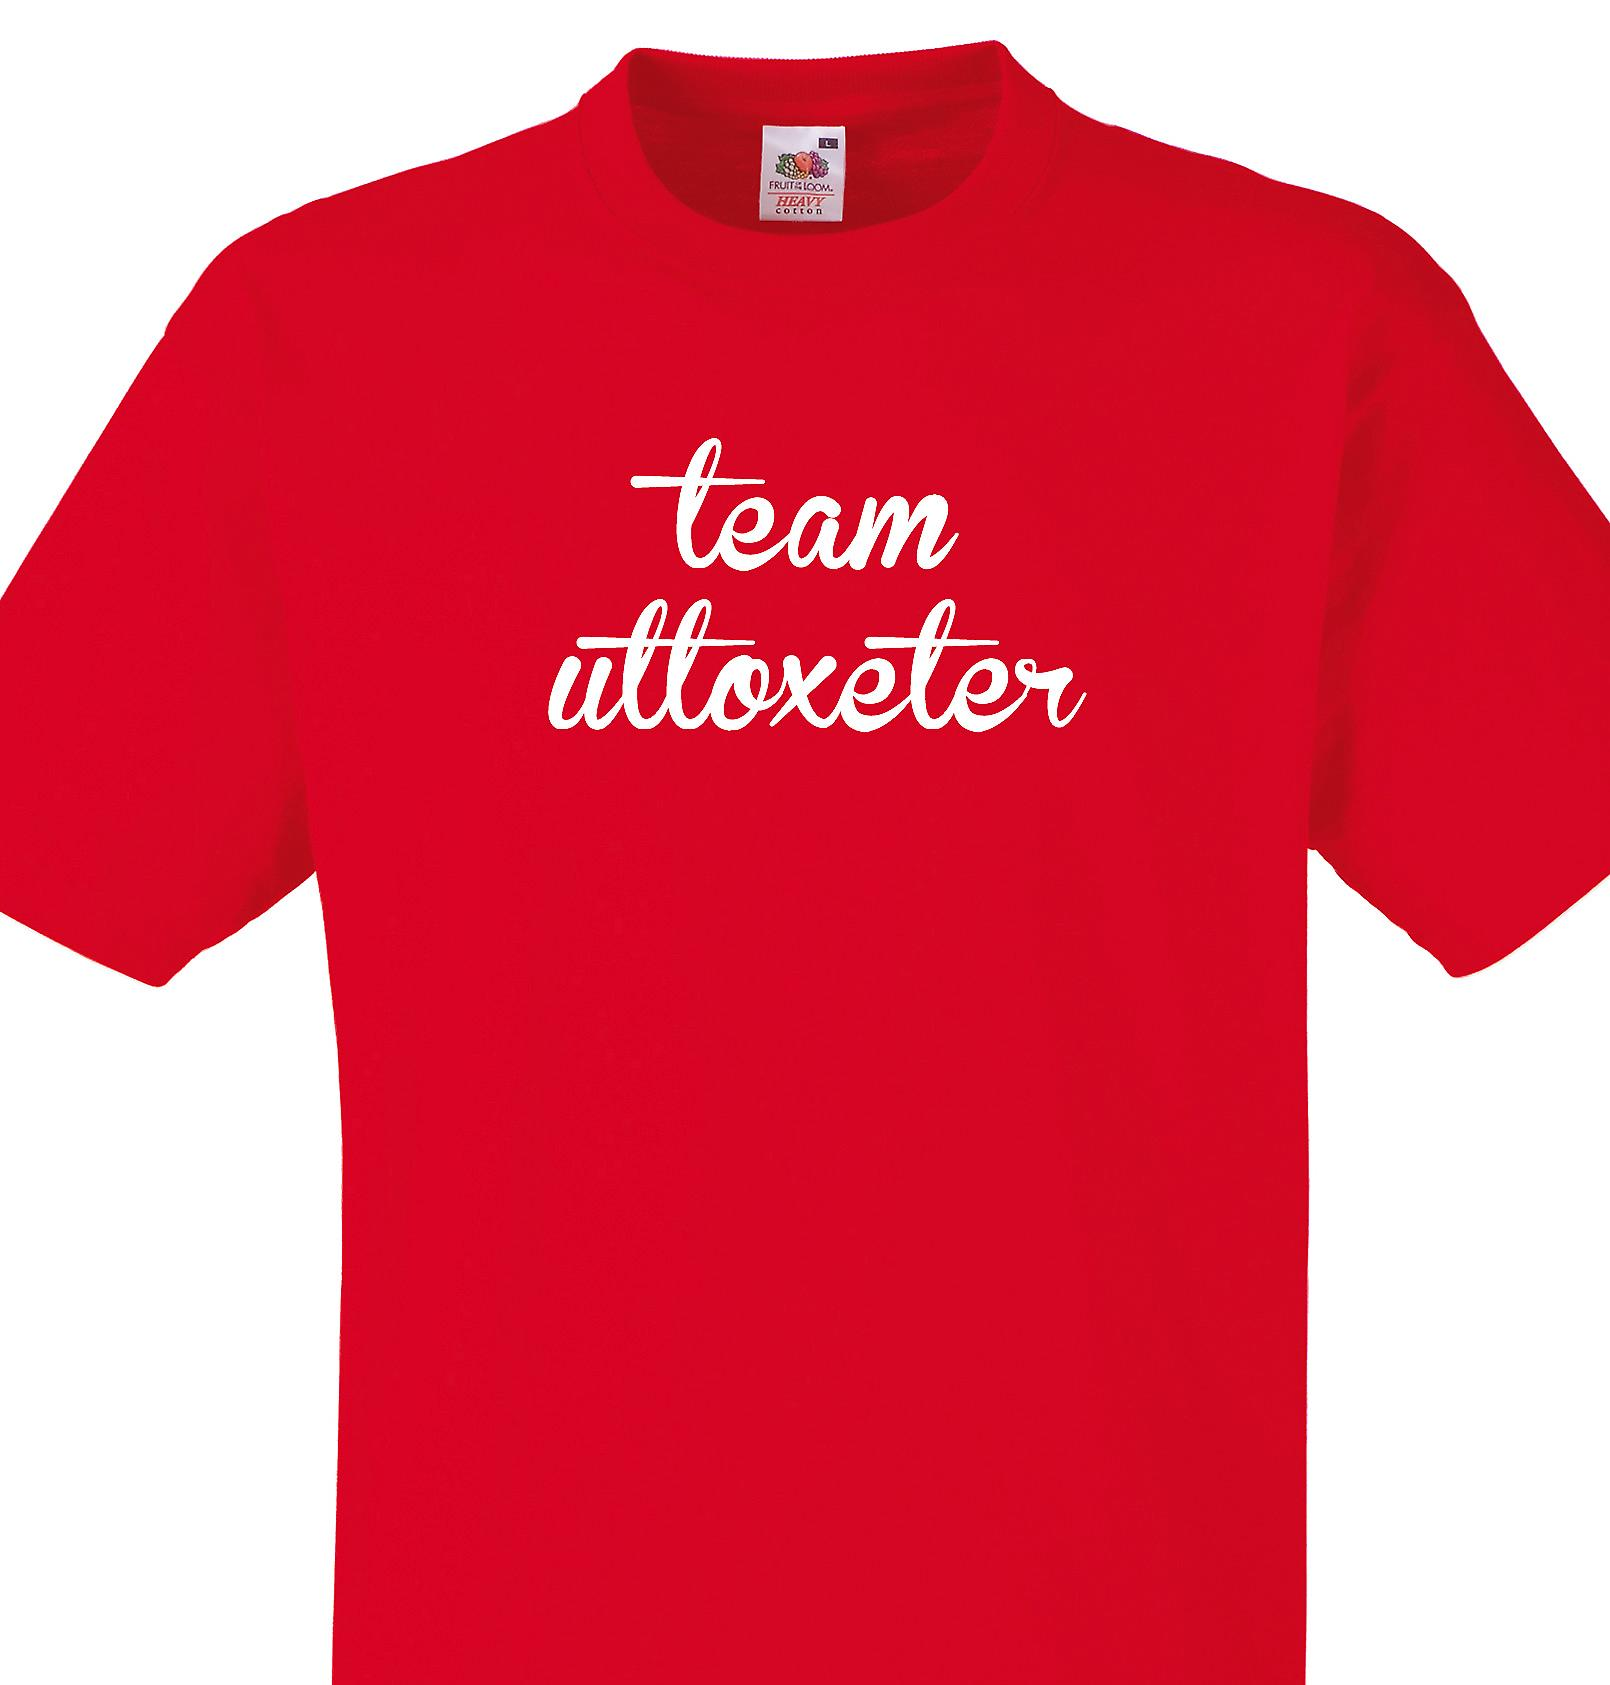 Team Uttoxeter Red T shirt